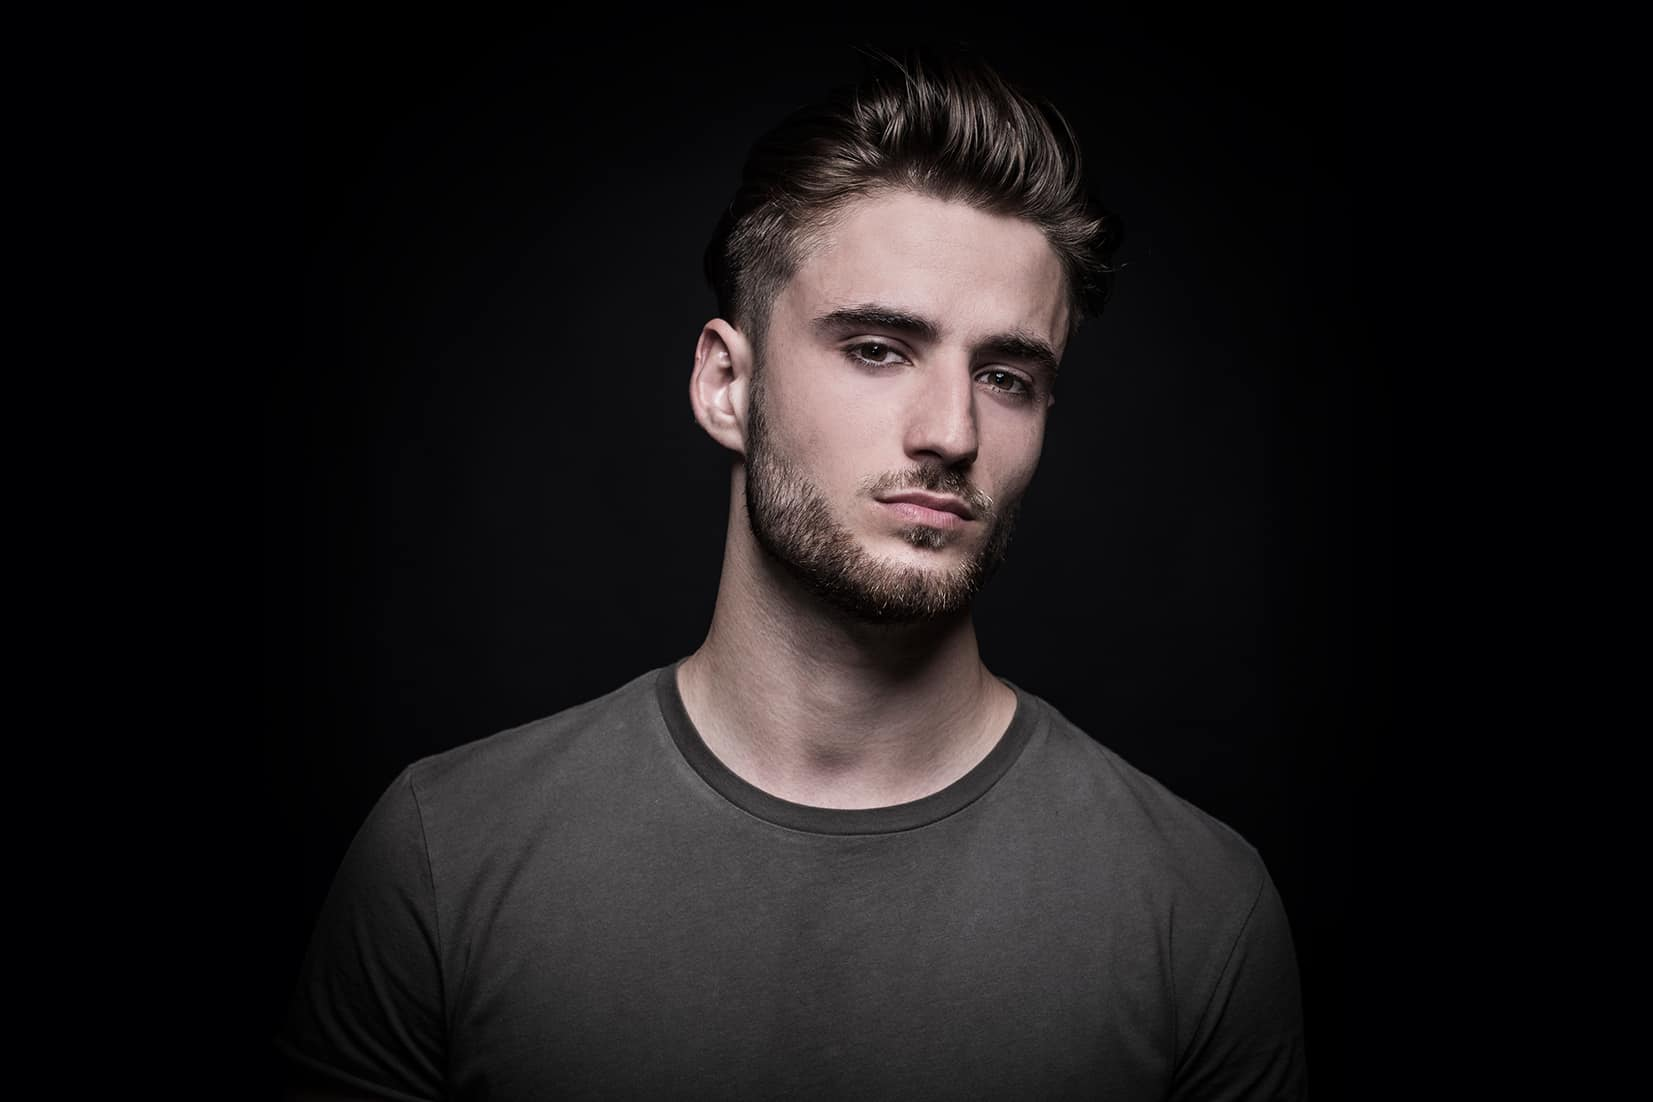 Ravitez – Exclusive Interview With The Dutch Perfectionist